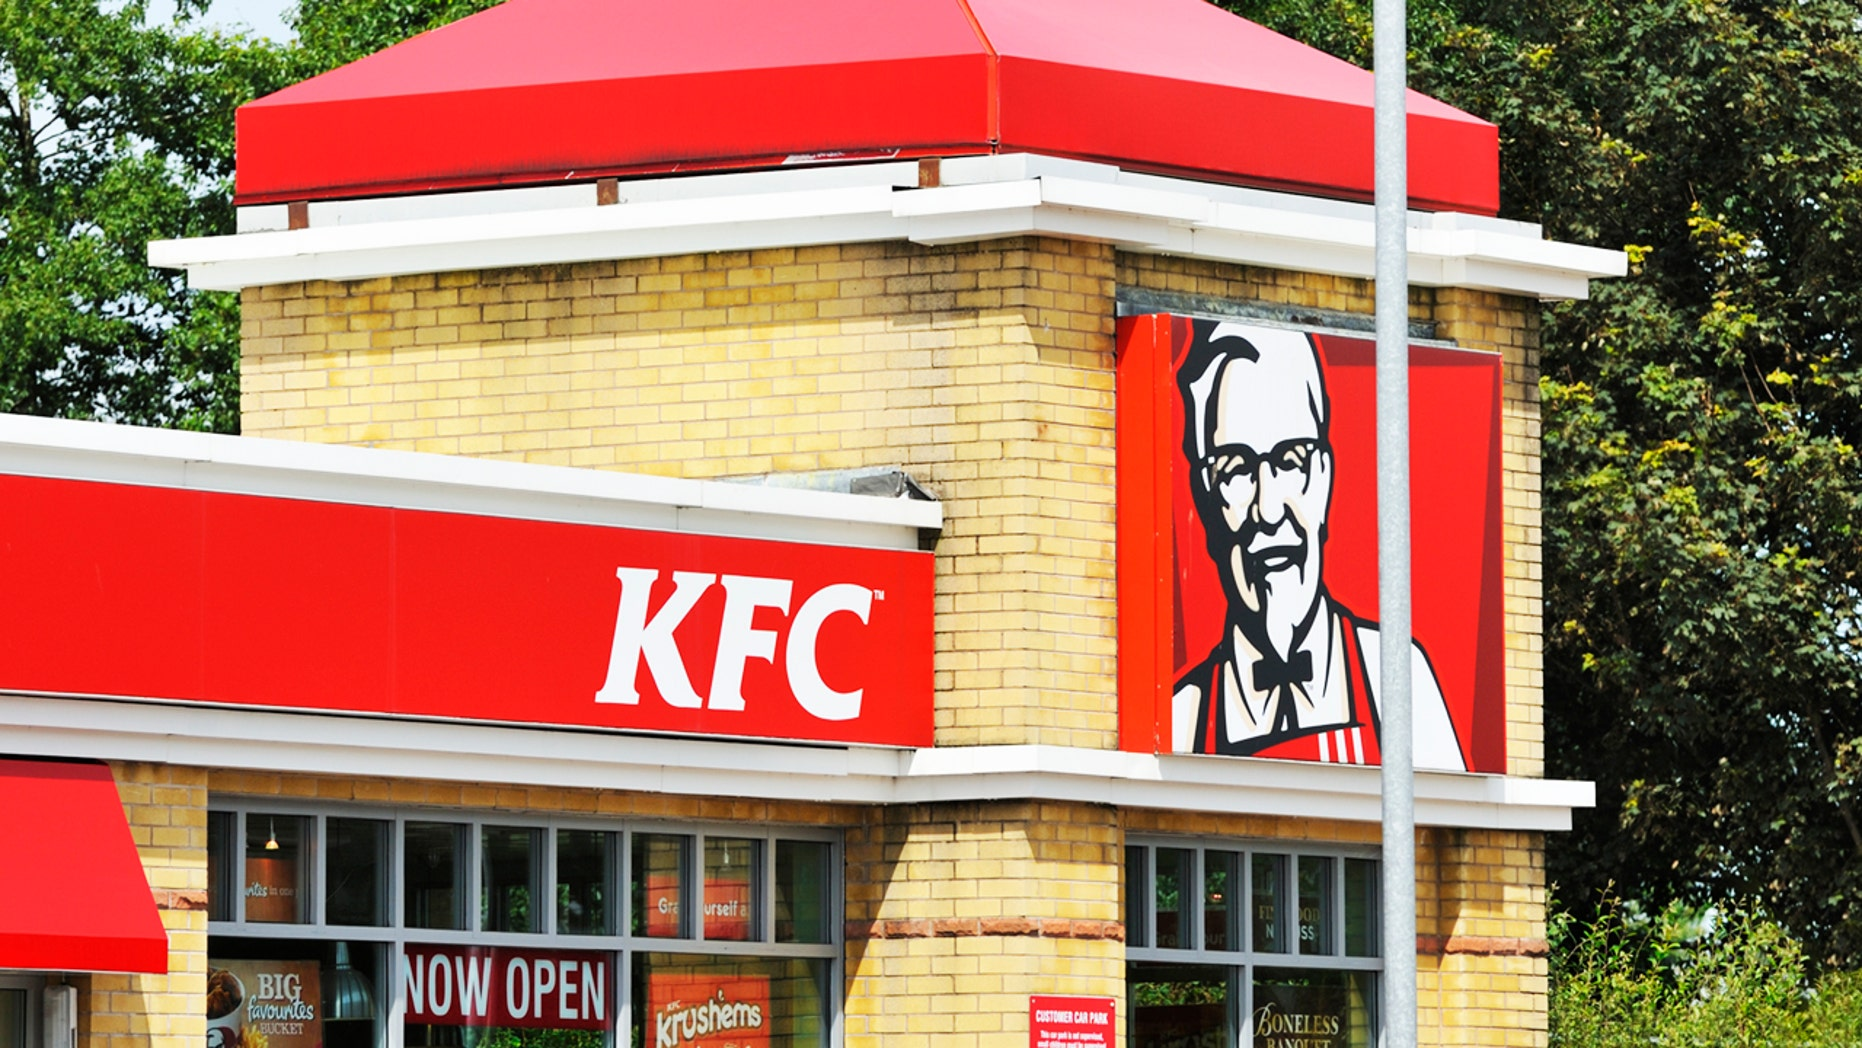 A U.K. KFC outlet has banned all customers under 18.